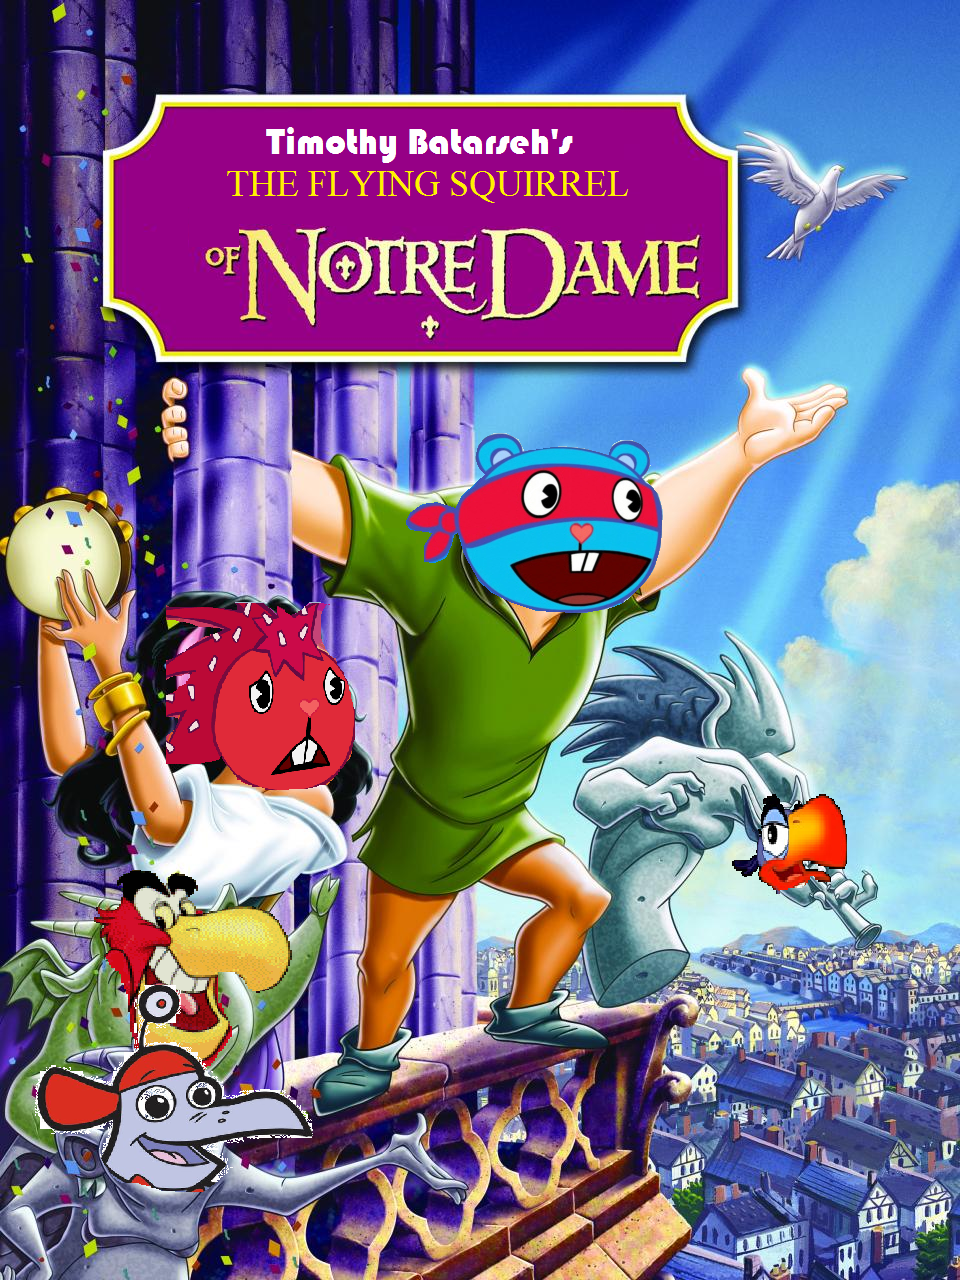 The Flying Squirrel of Notre Dame